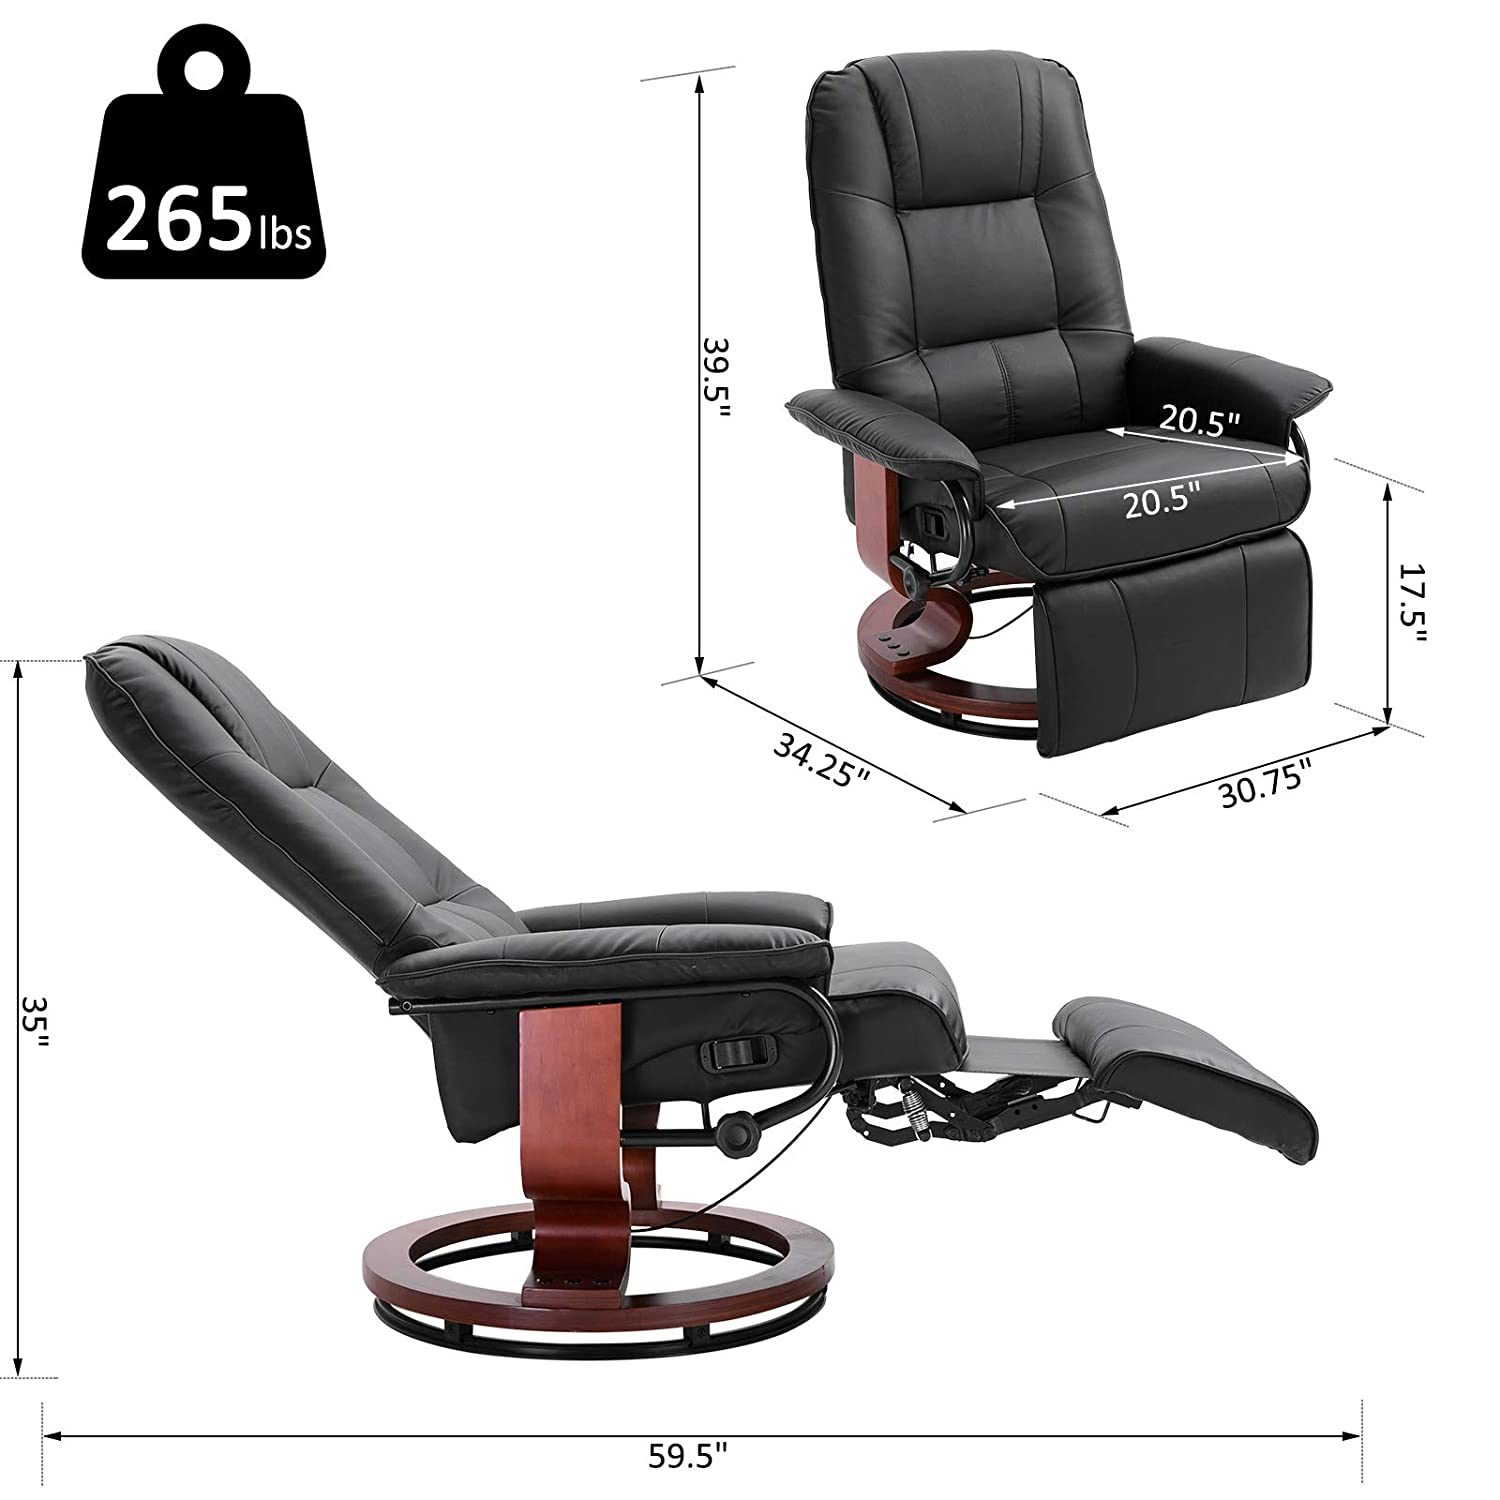 Amazon.com: Silla reclinable de piel sintética ajustable con ...